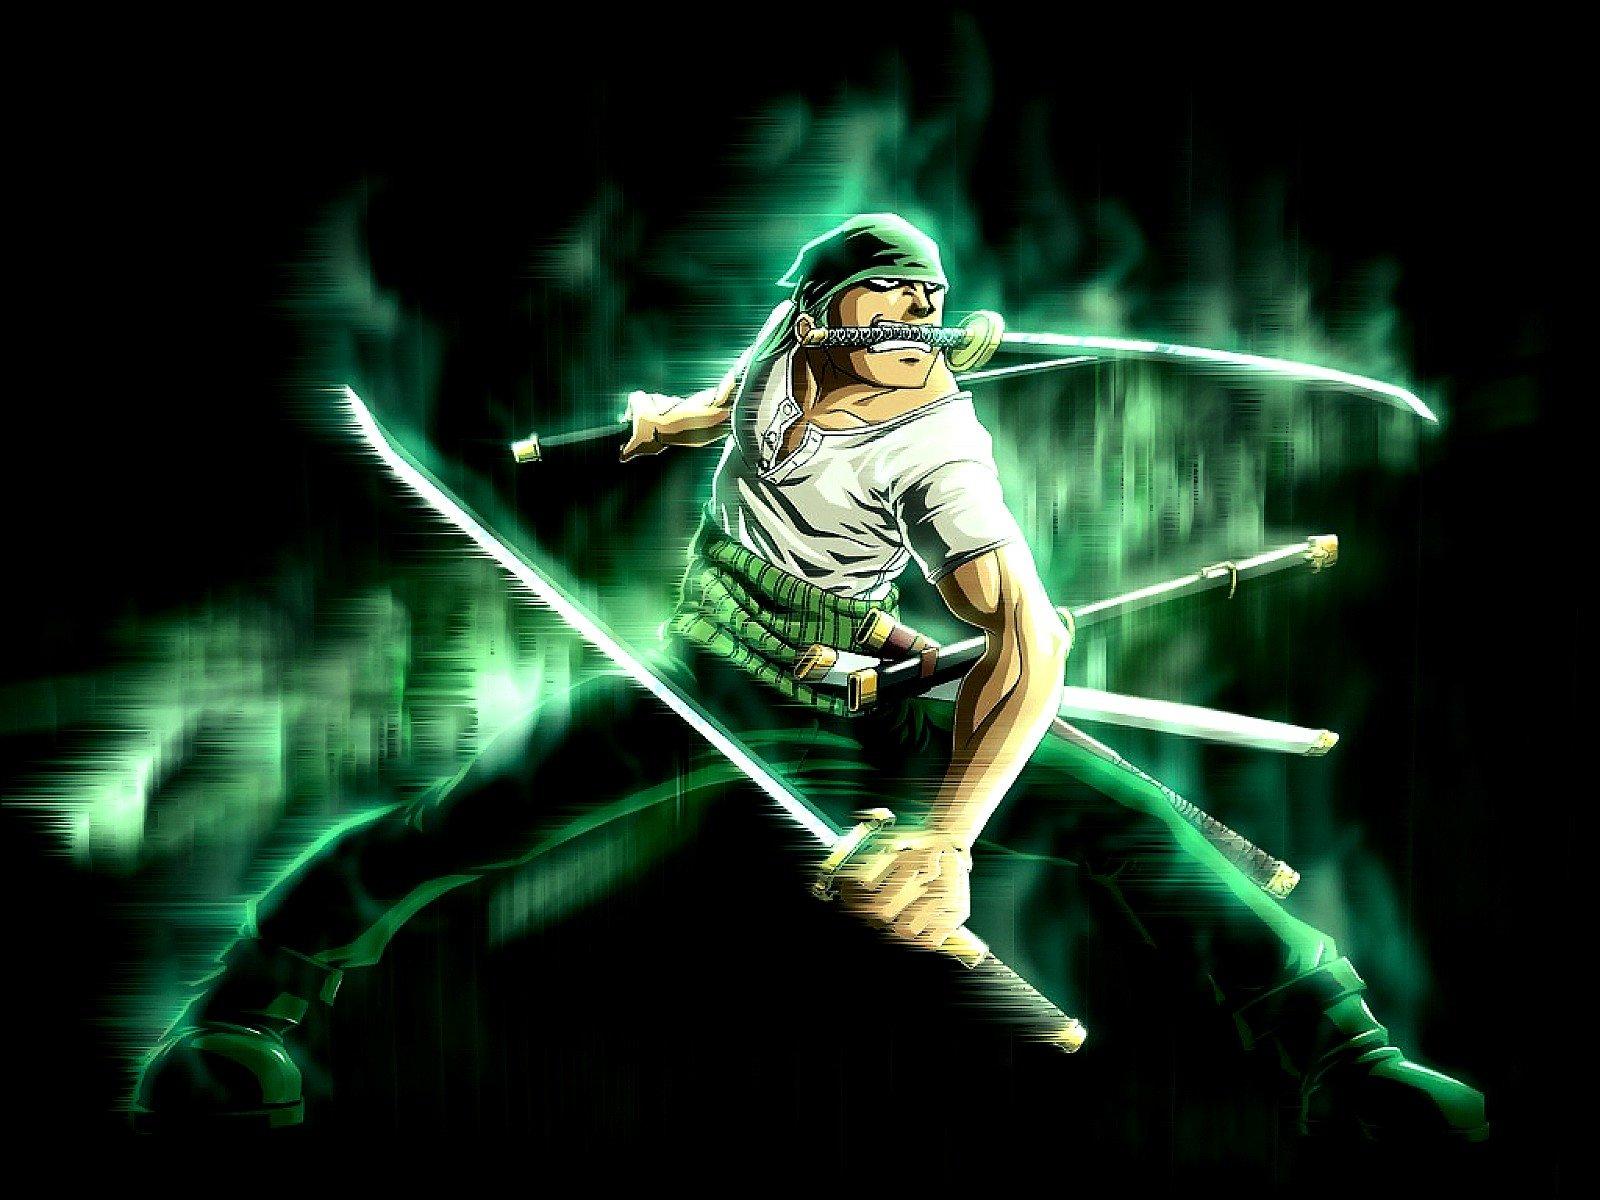 76 ] E Piece Zoro Wallpaper On WallpaperSafari